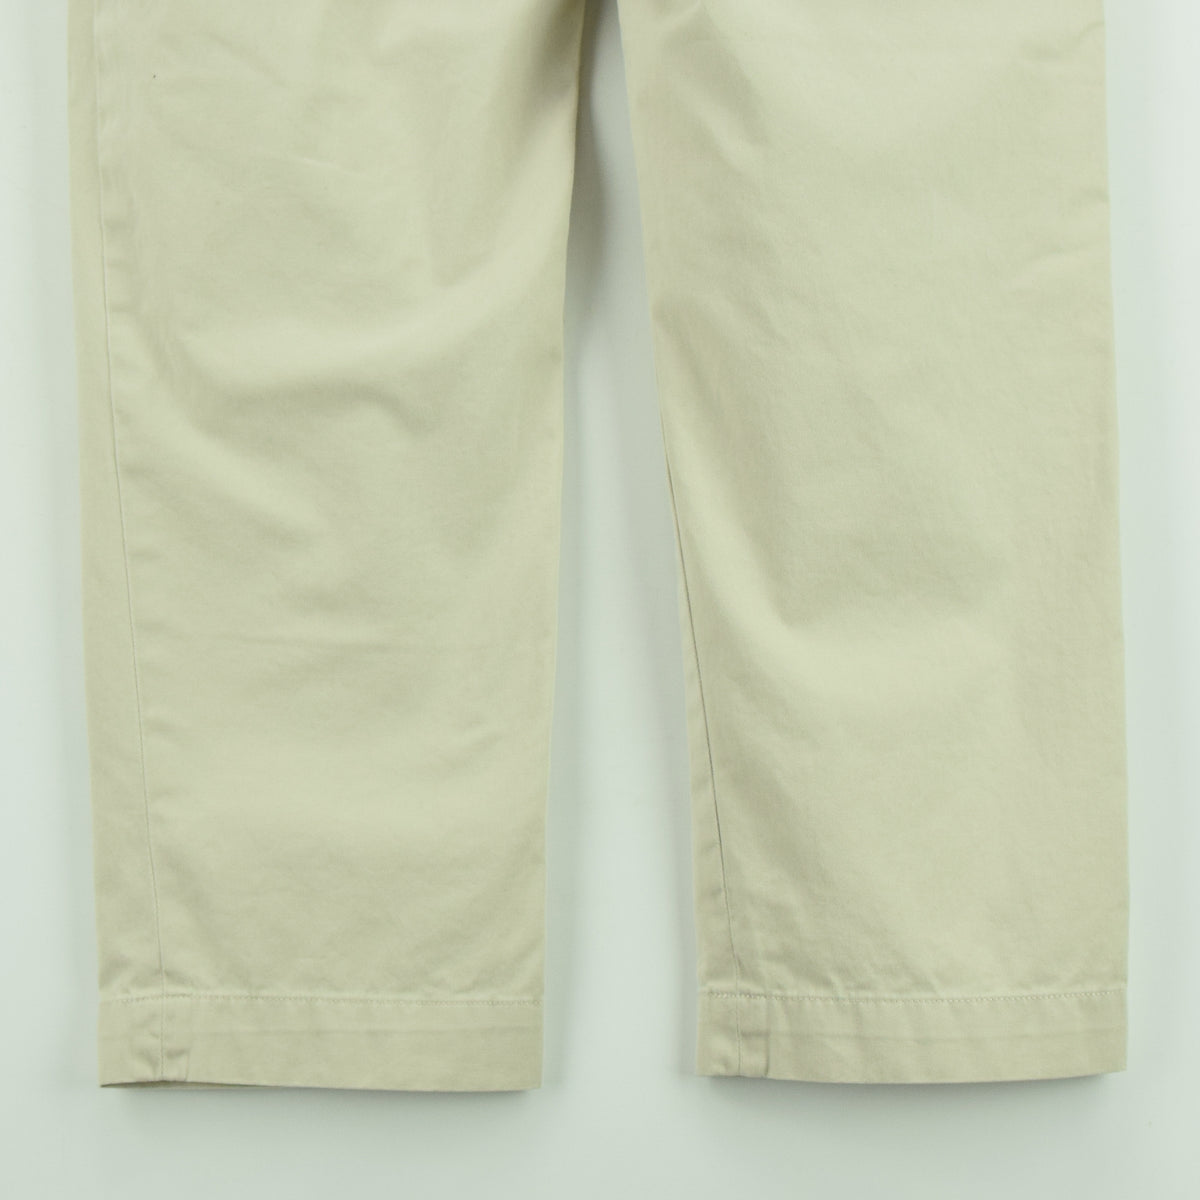 Vintage Ralph Lauren Polo Ethan Pant Chinos Pleated Front Trousers 32 W 28 L back hem